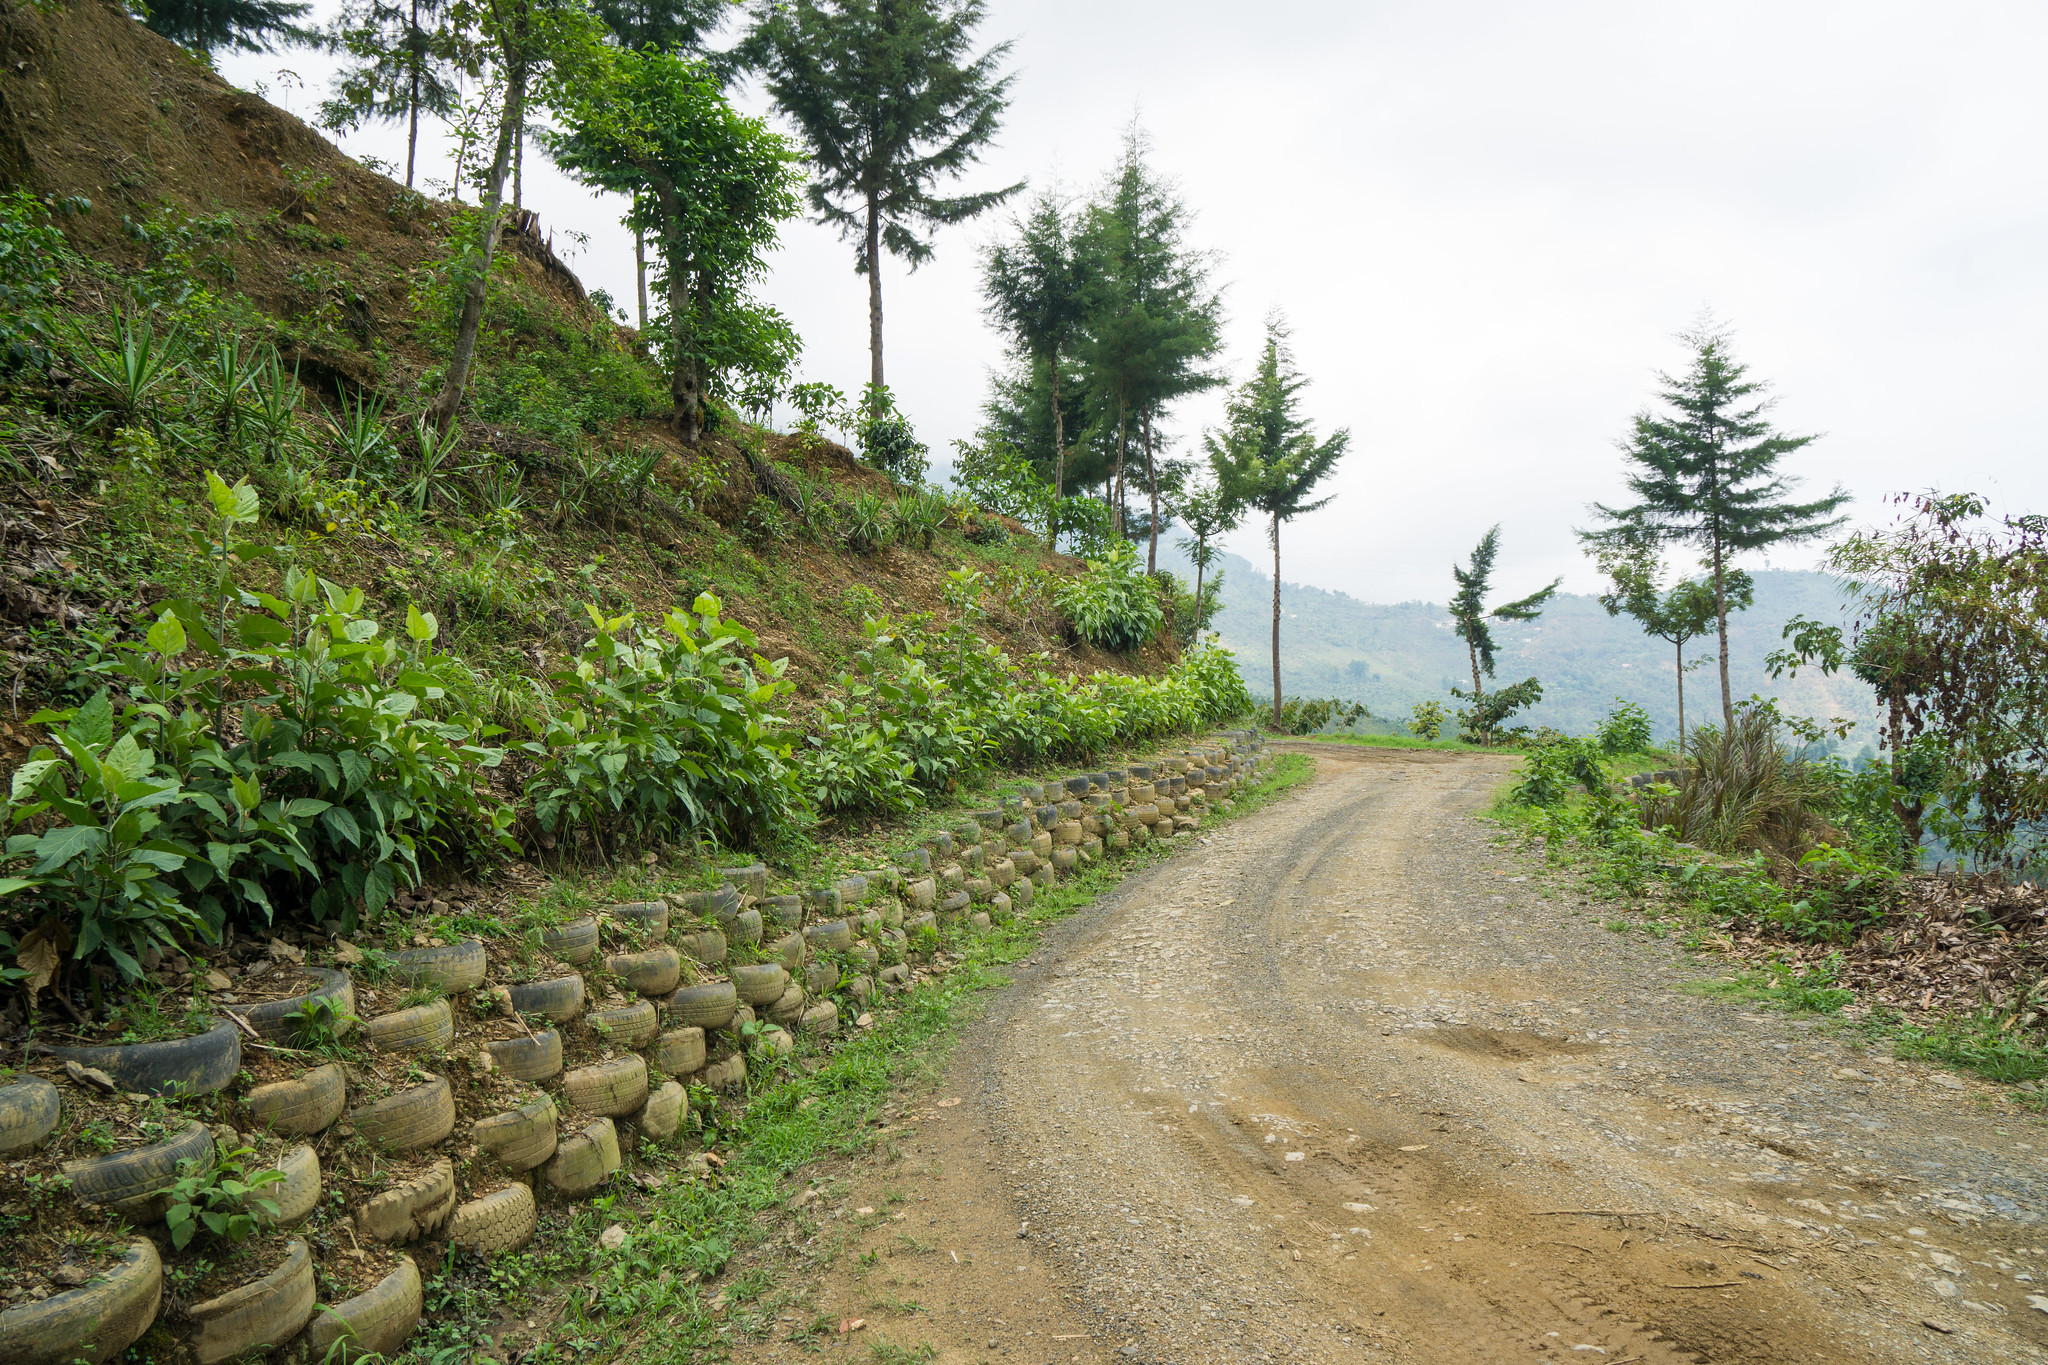 The Road to Finca Vista Hermosa.  Tires reused as road protection